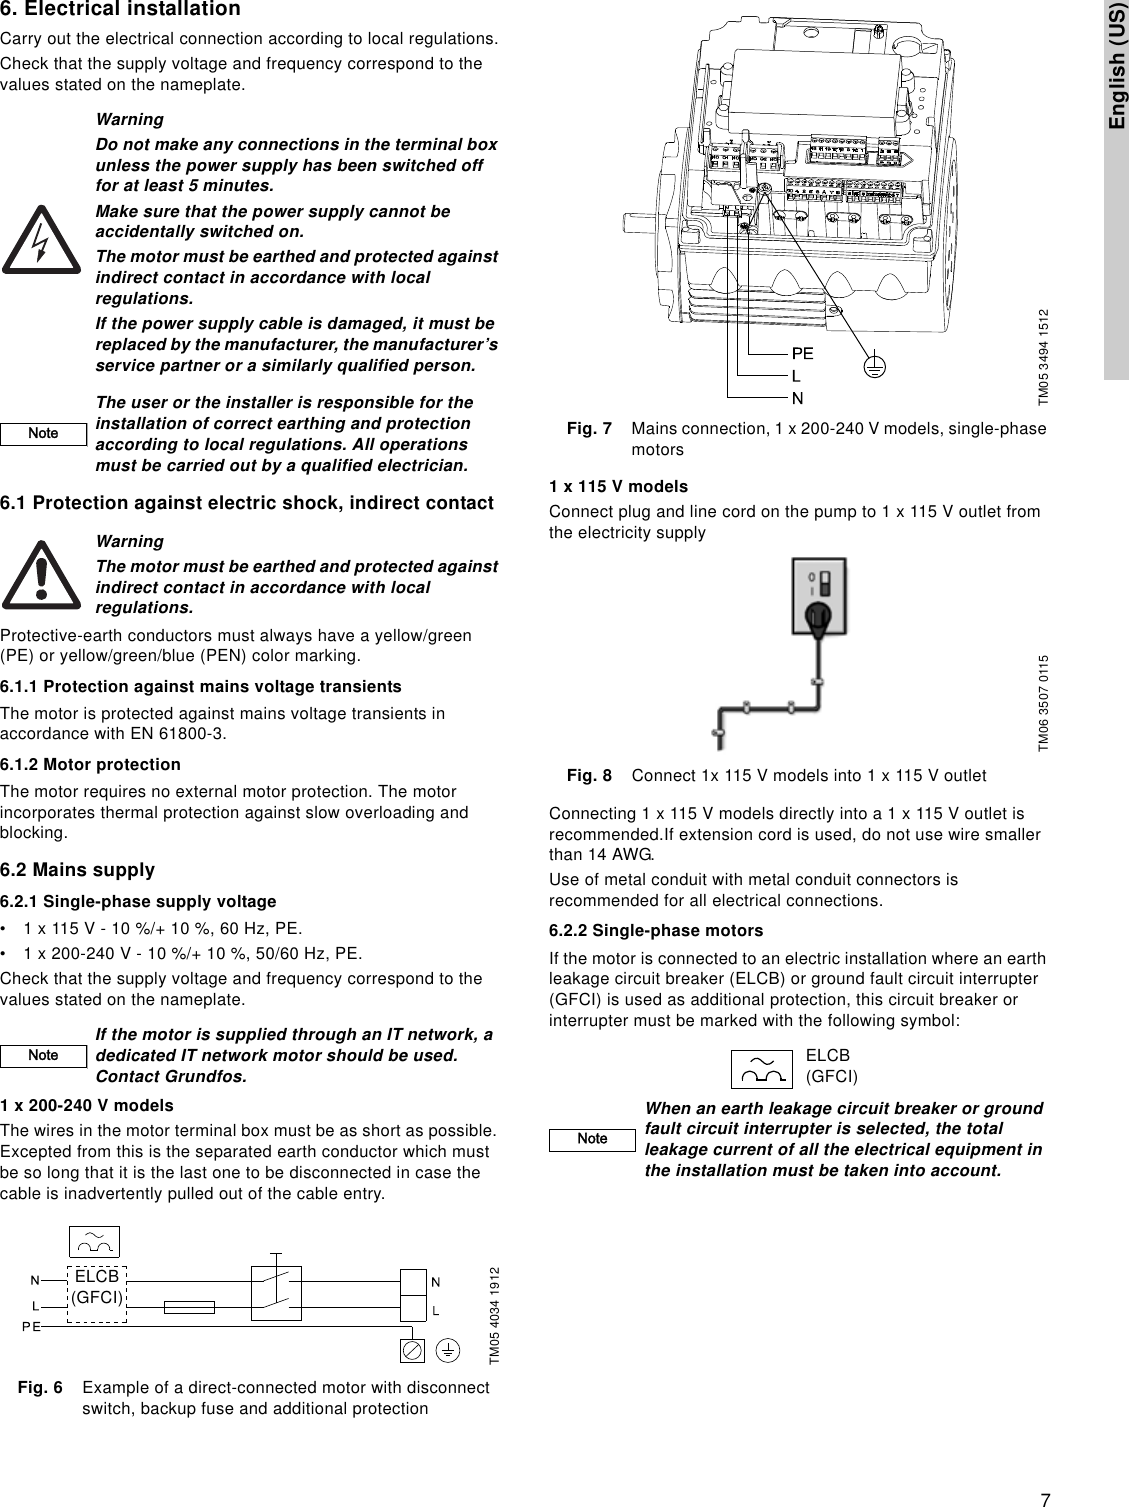 Ame Electric Brake Controller Wiring Diagram : Grundfos cmbe booster pump operating instructions